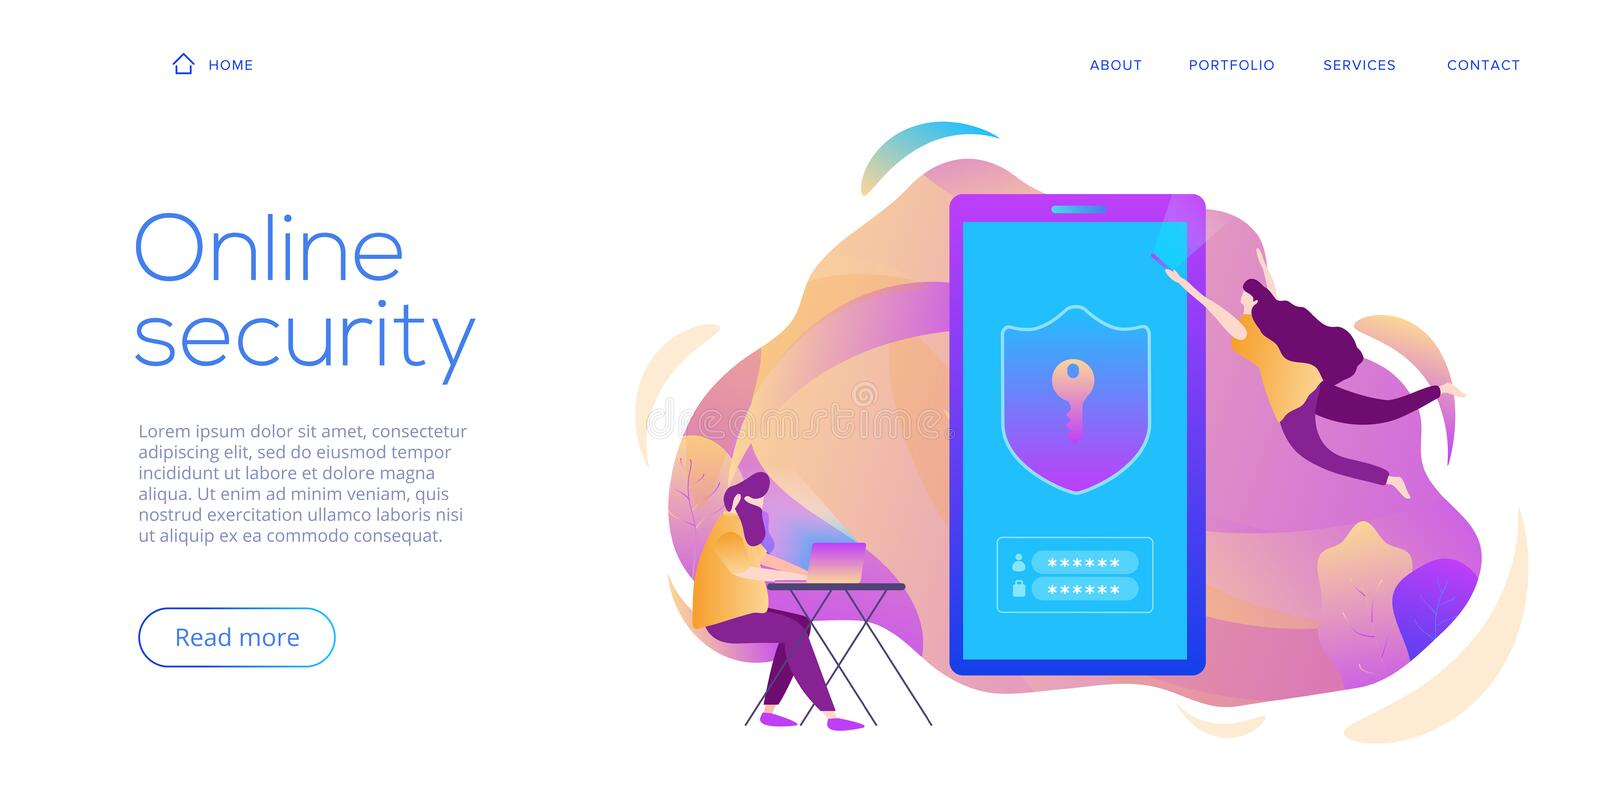 Personal data security in creative flat vector illustration. Online computer or mobile protection system concept. People making royalty free illustration